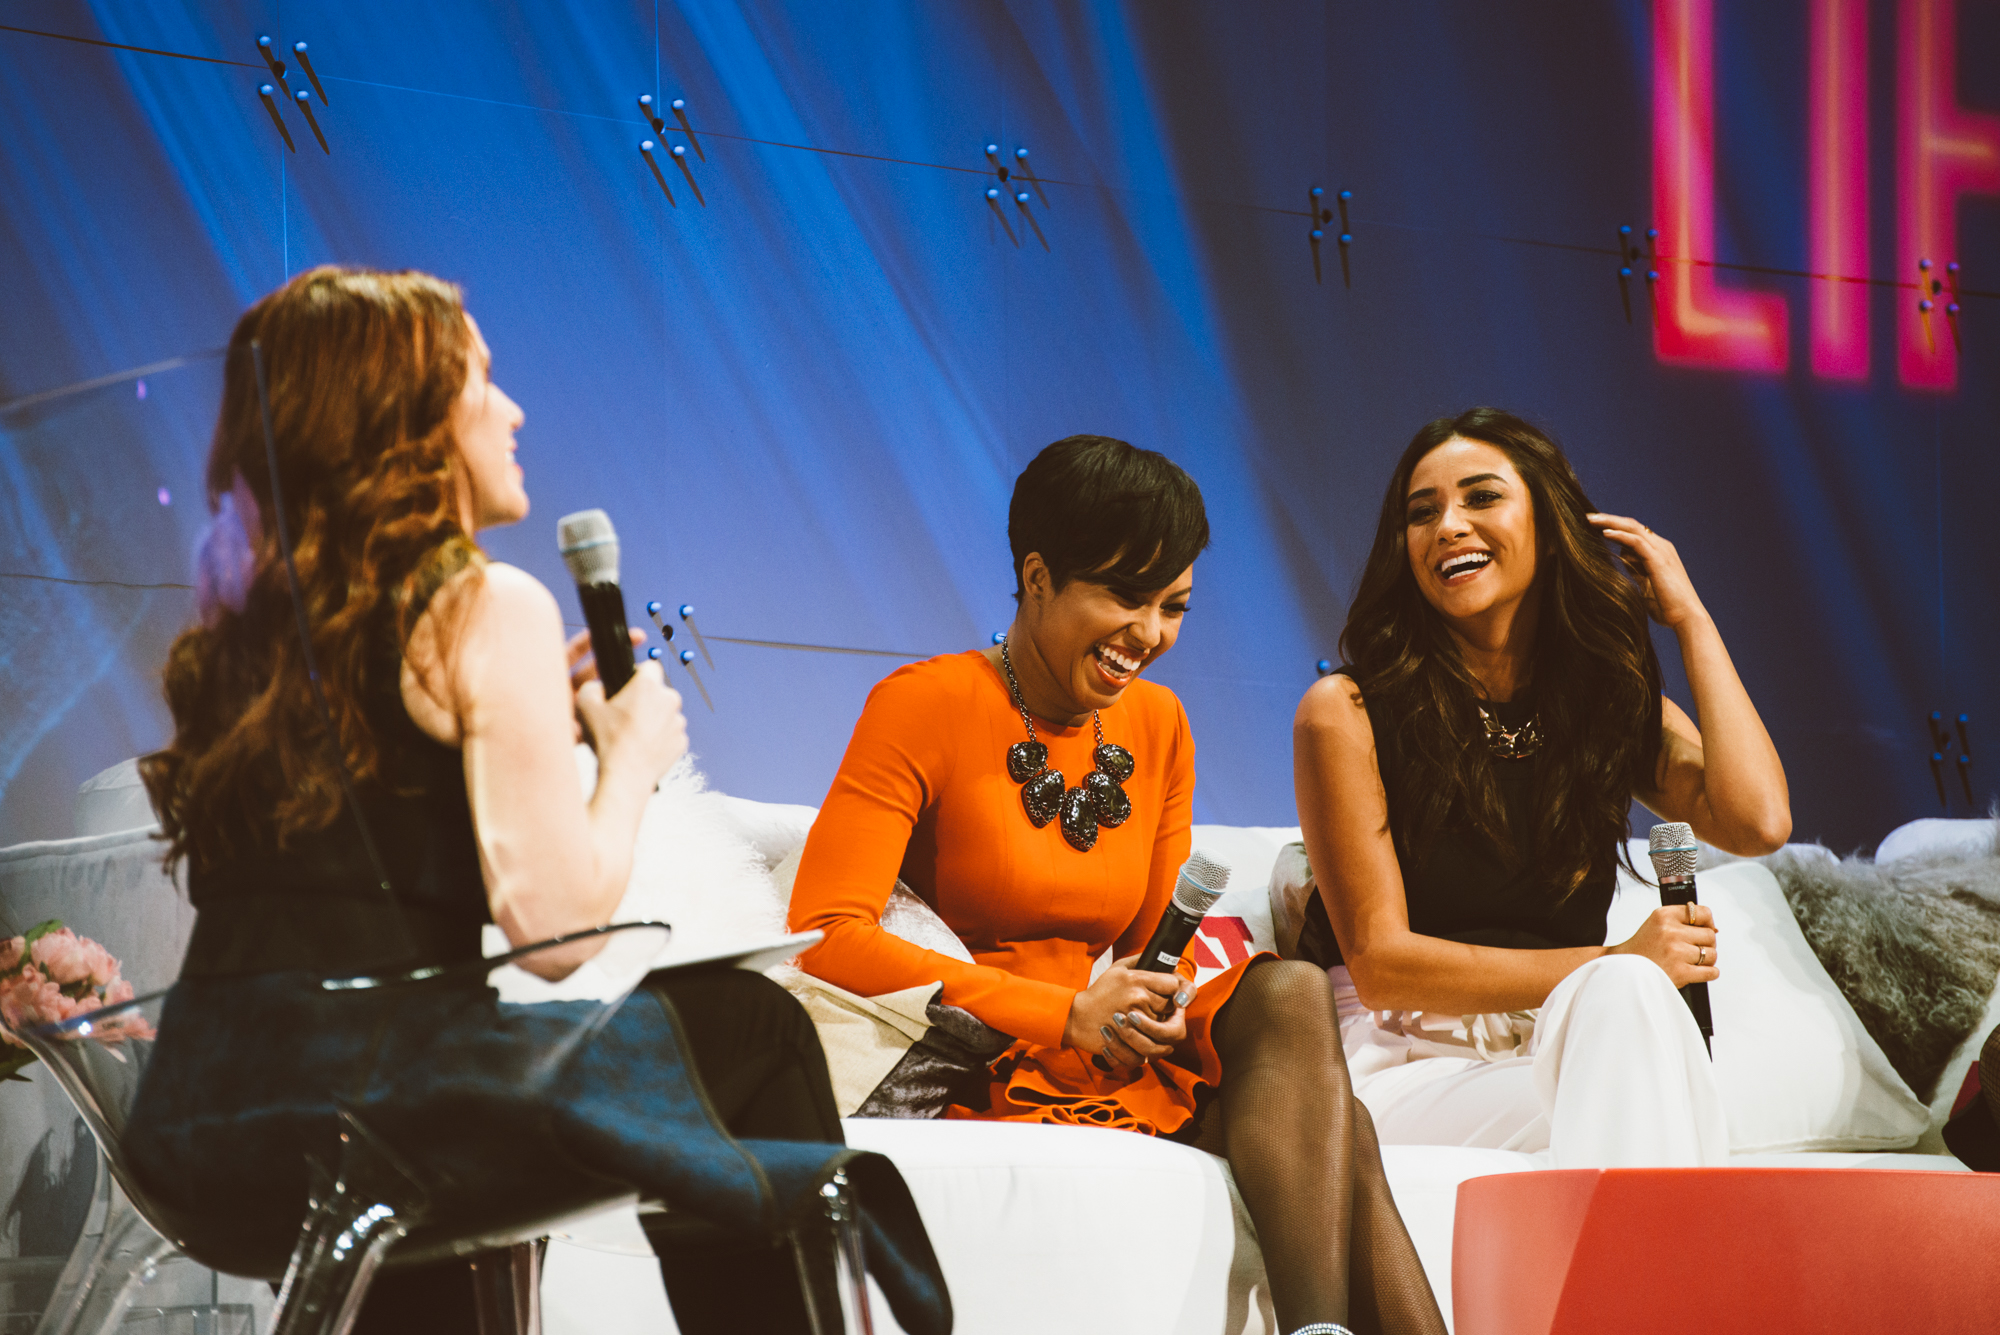 SVP of Global Communications at Donna Karan Aliza Licht, Alicia Quarles of E! News and Shay Mitchell of Pretty Little Liars